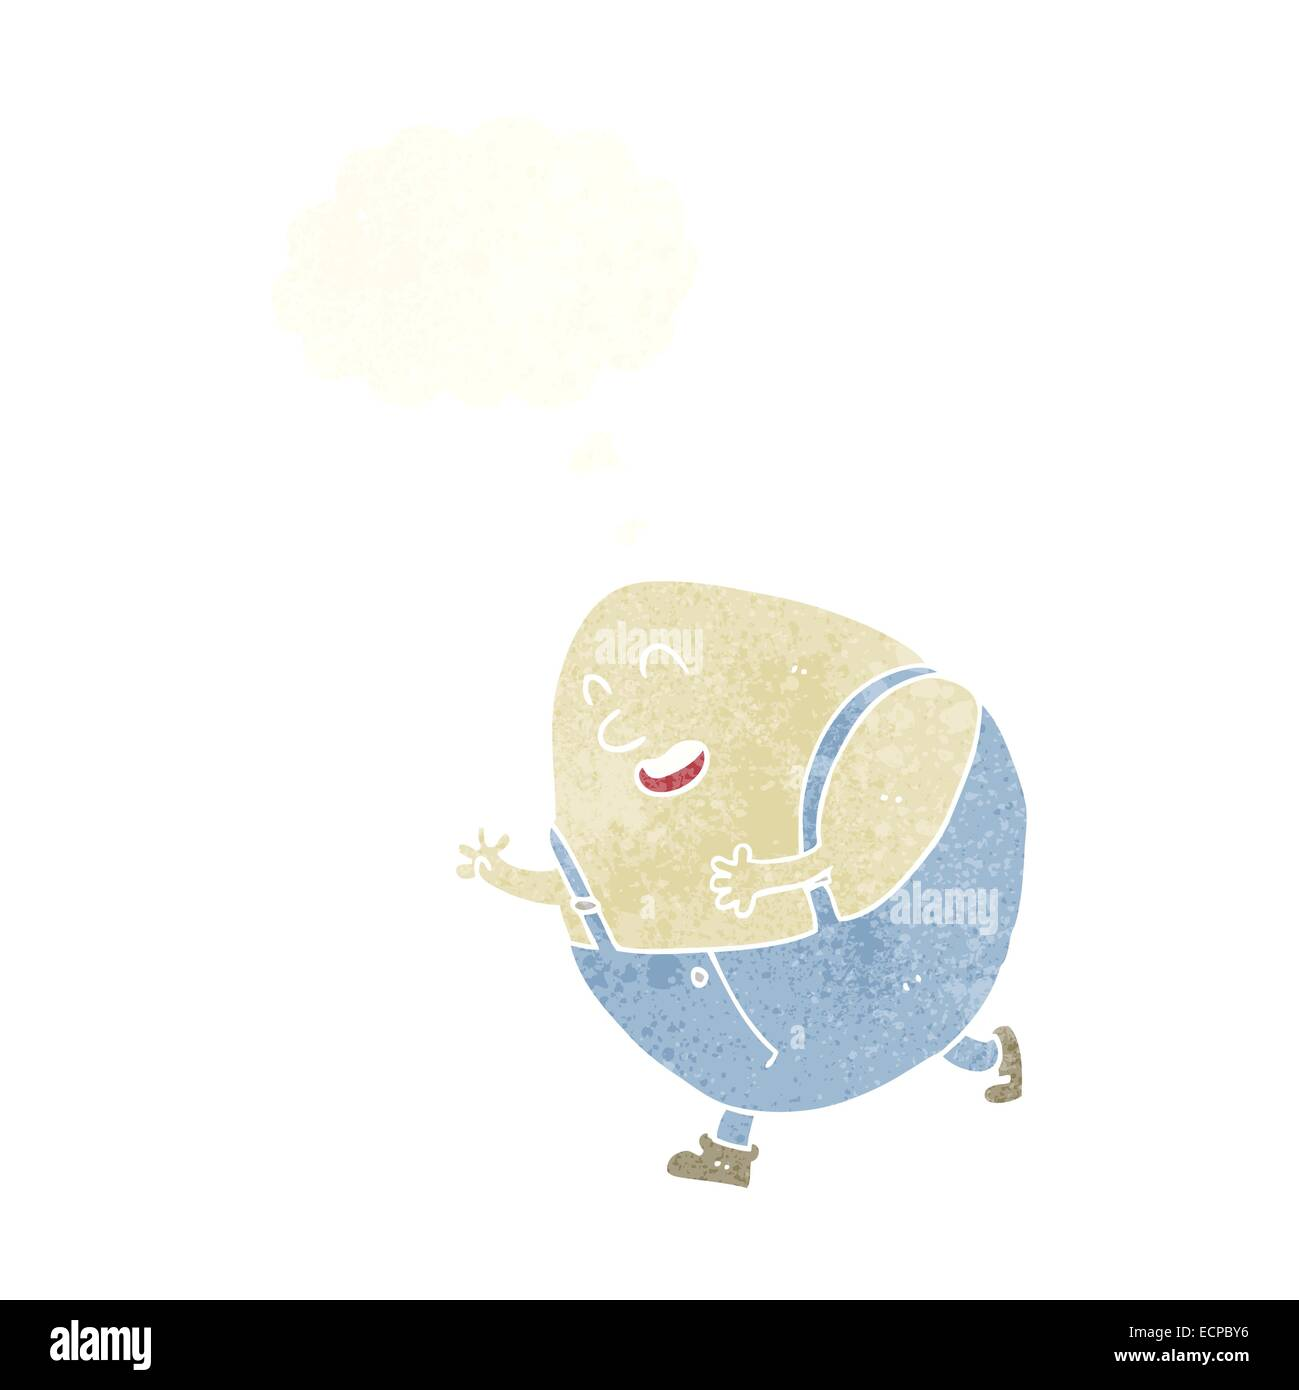 cartoon humpty dumpty egg character with thought bubble Stock Vector